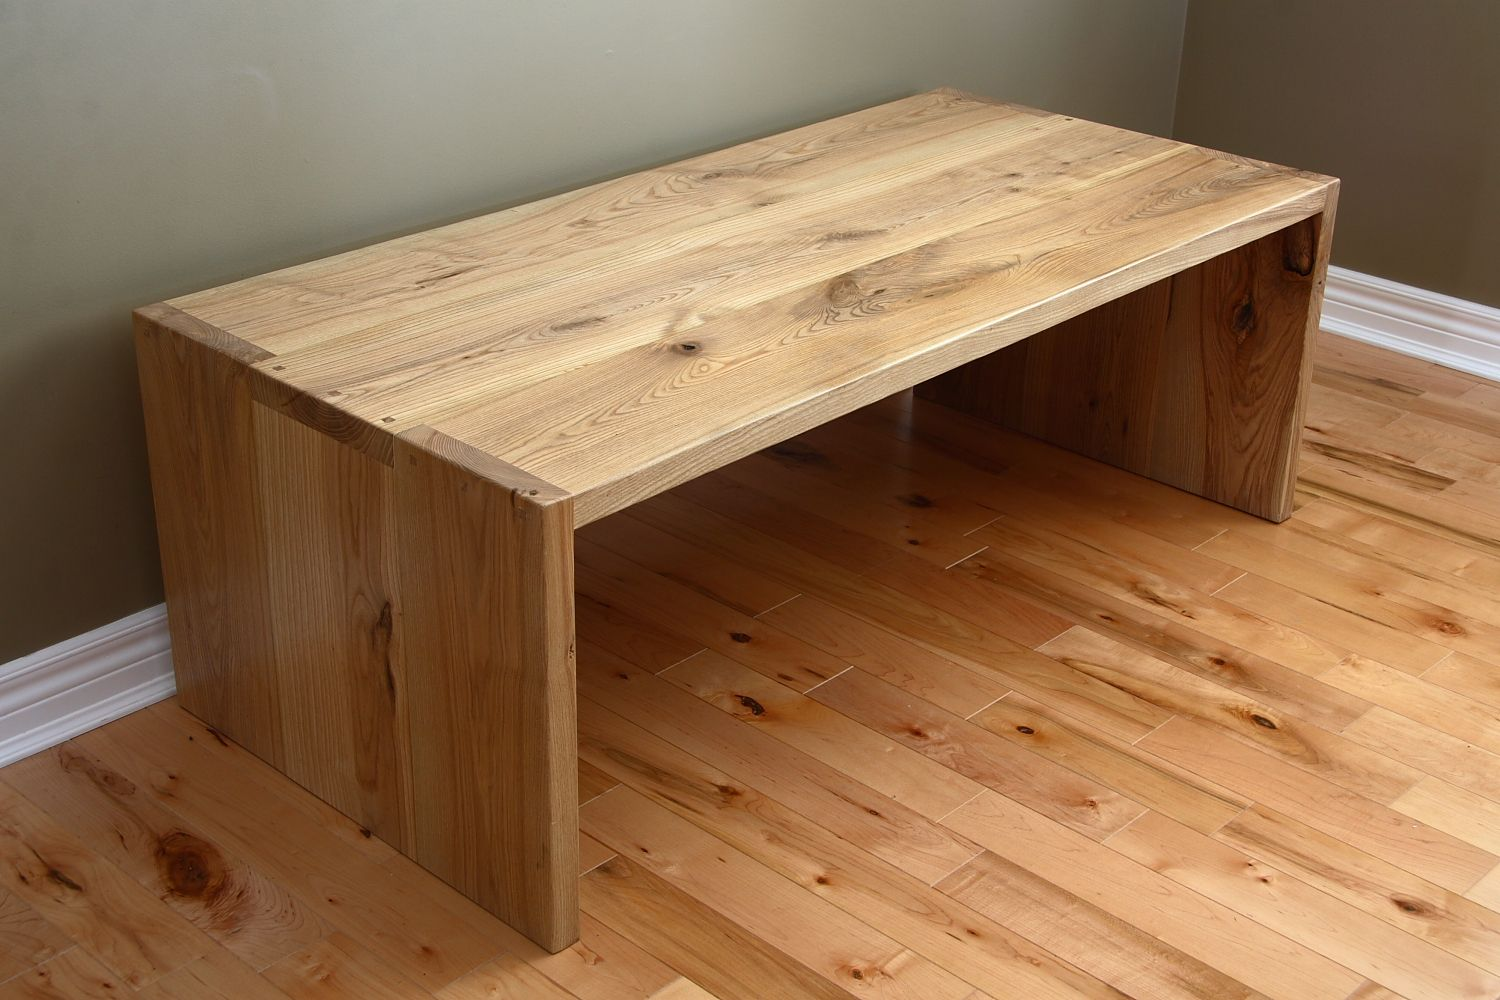 Pin By Tim Ertl On Table Wood Table Design Rustic Pine